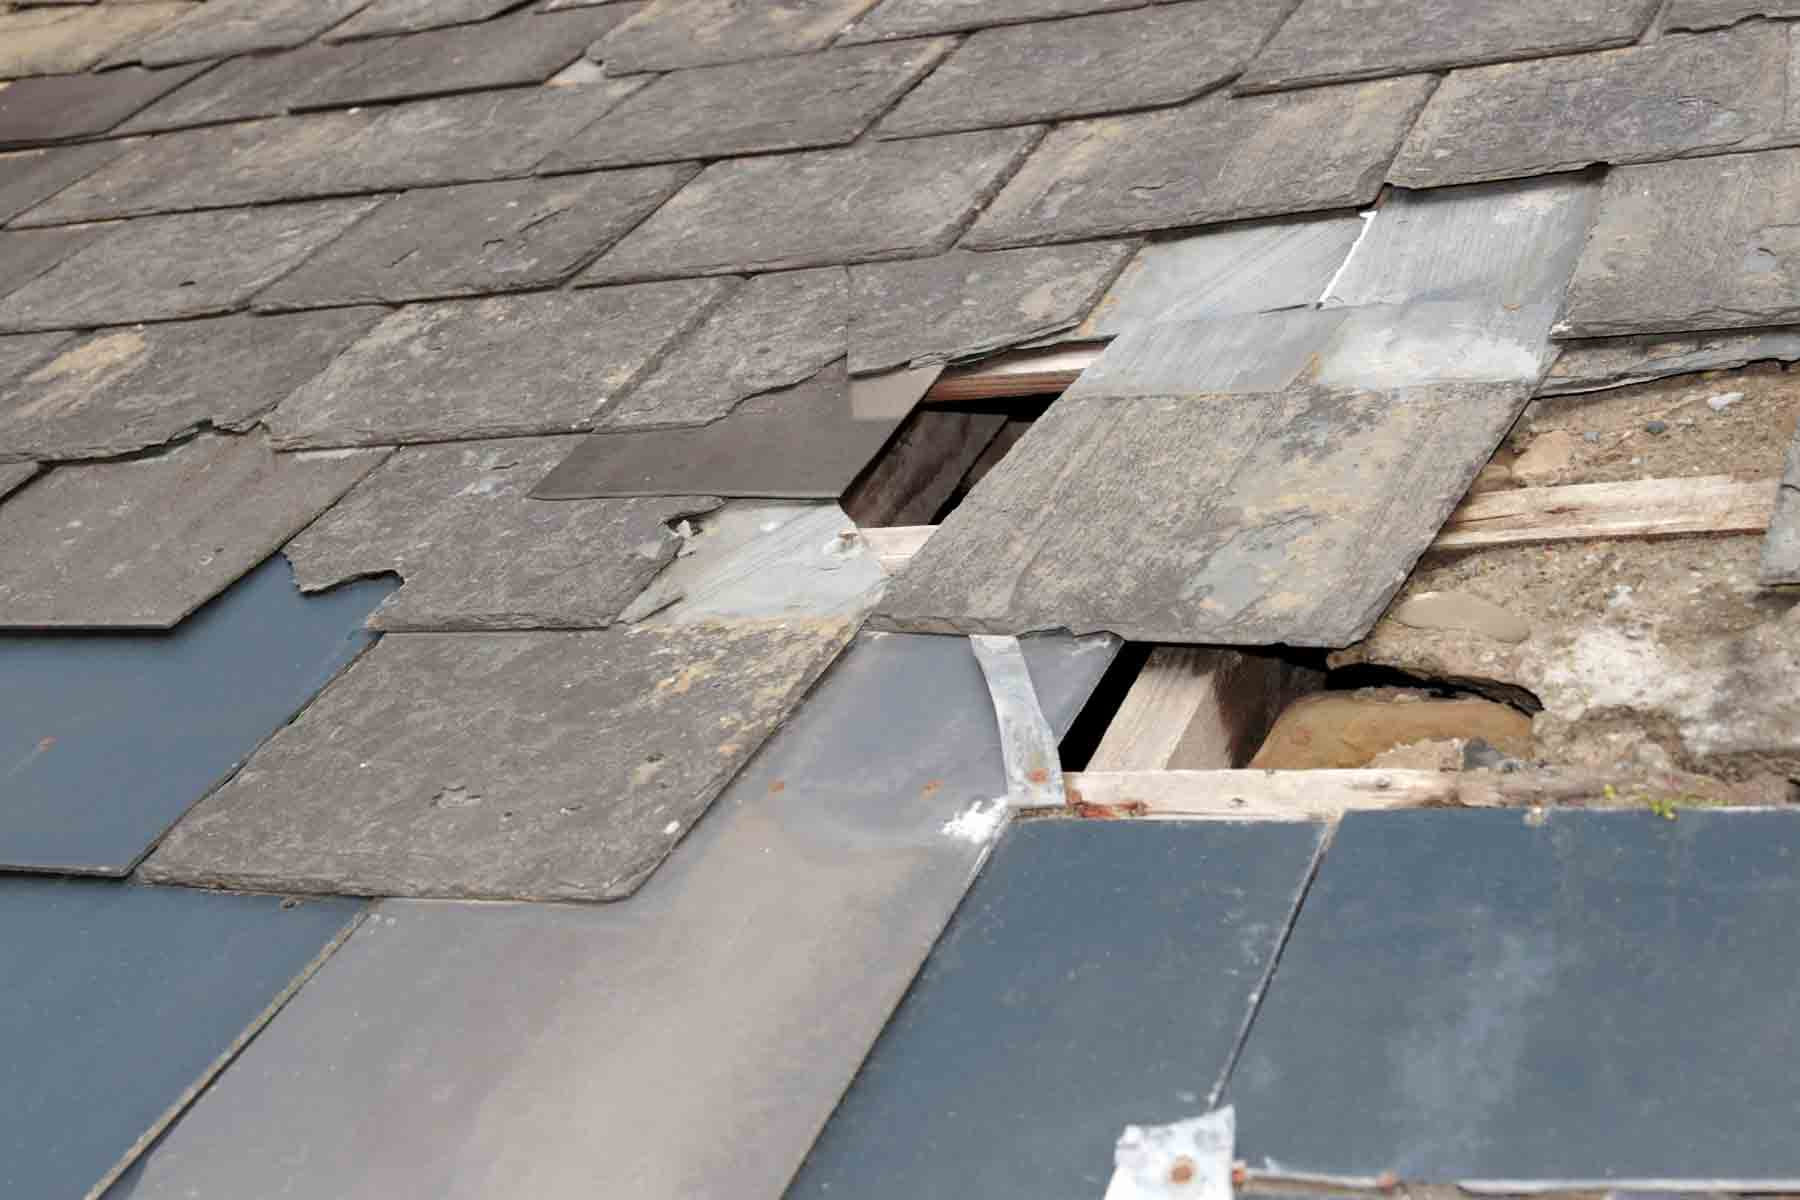 Common Causes of Roof Deterioration